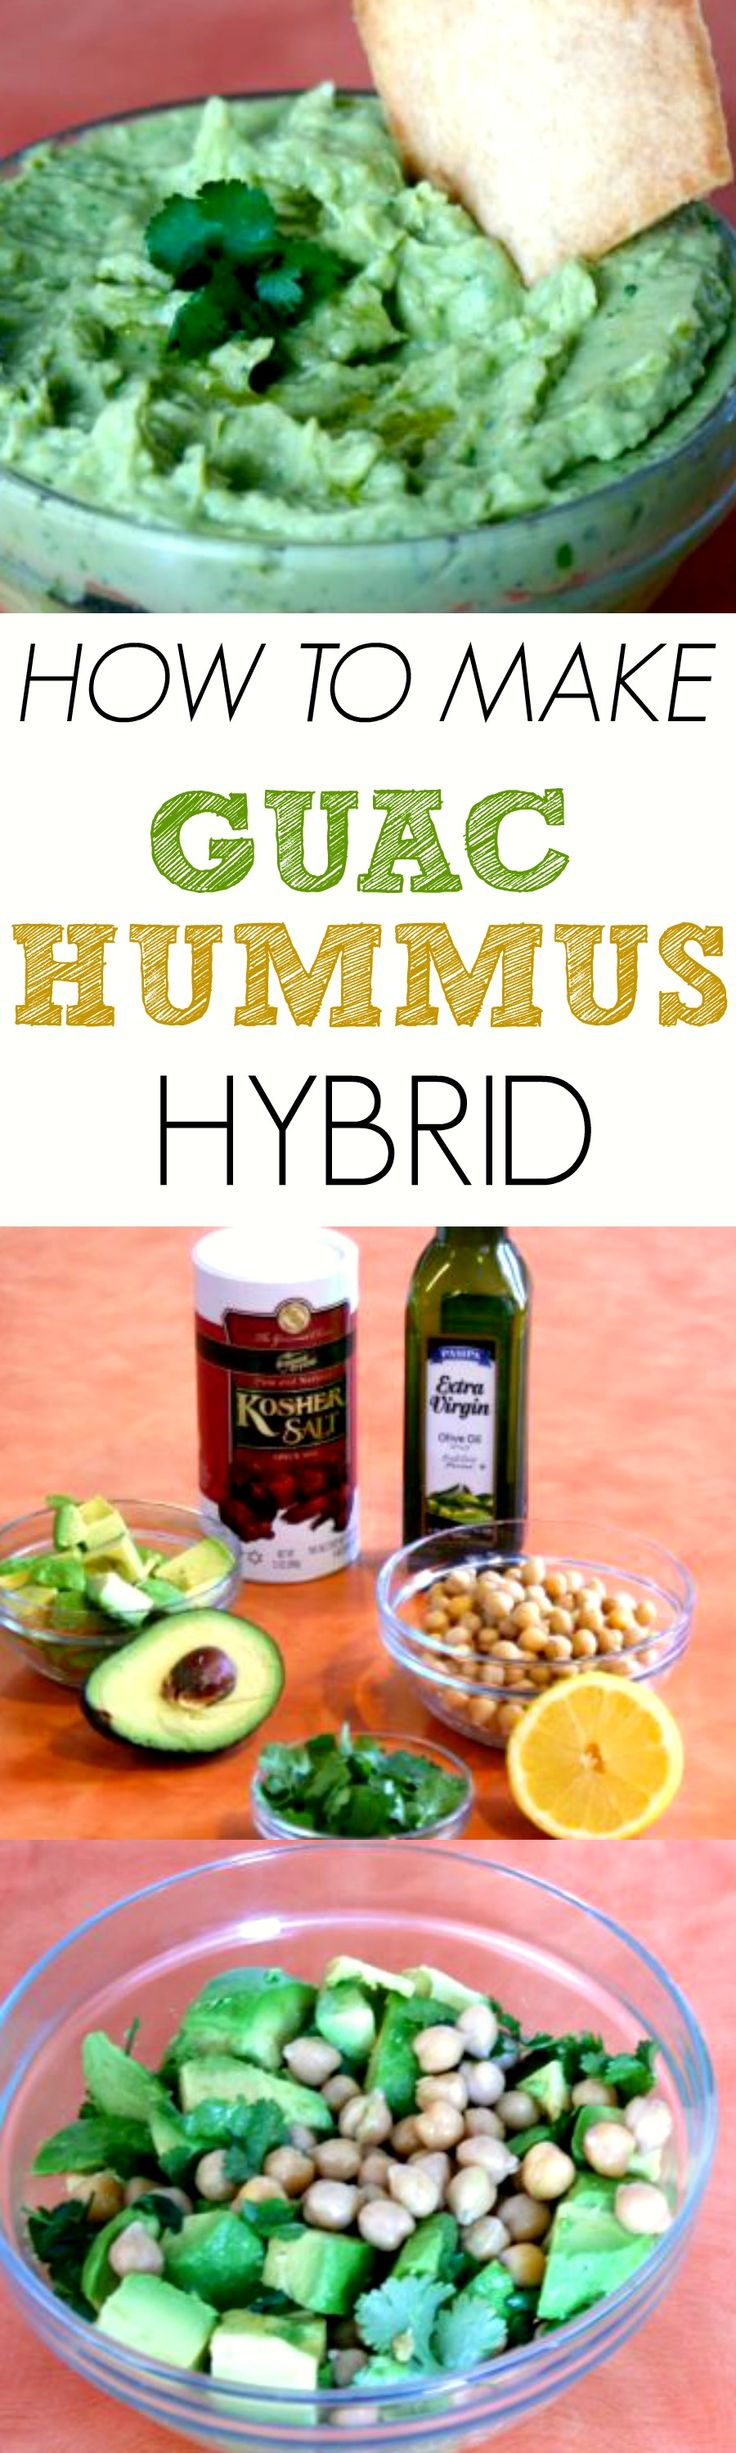 The healthiest party dip you'll ever make. Not to mention you'll be the coolest party host on the block. Mix everyone's favorite two dips together--hummus and guacamole. You will be loved. #dip #guac #hummus